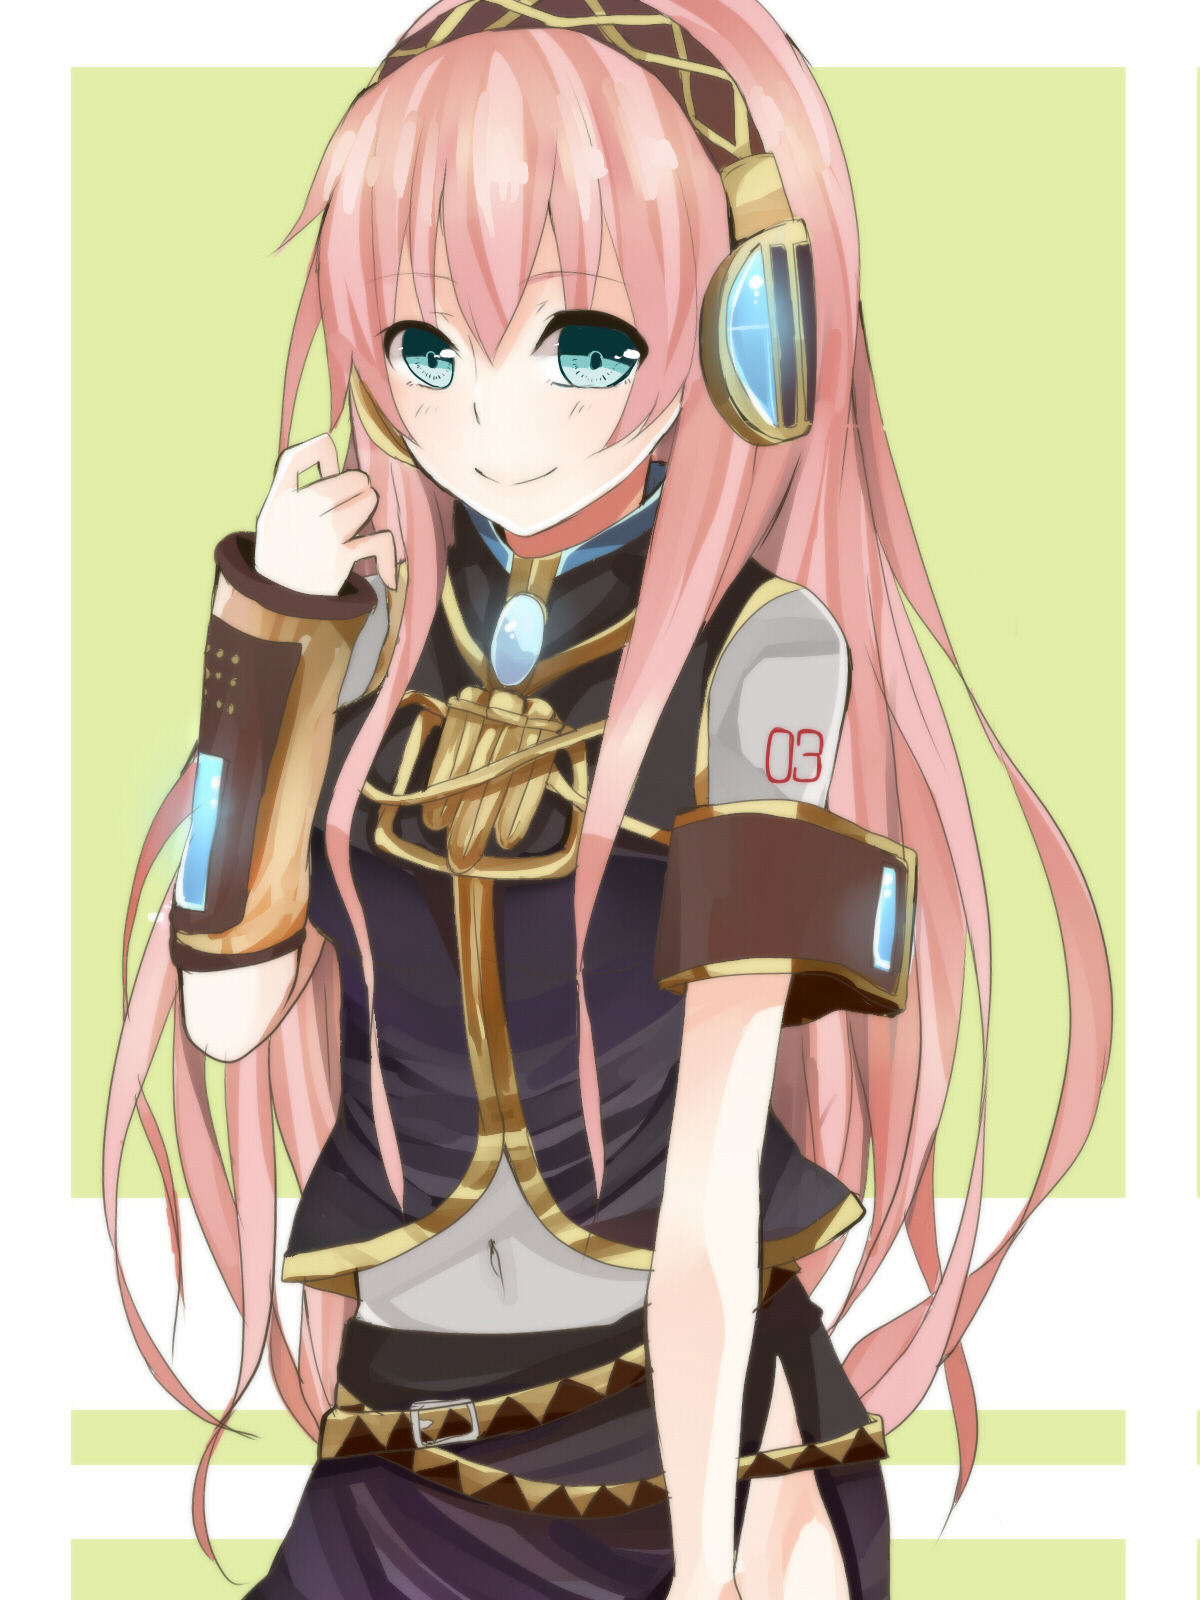 Megurine Luka | Wiki Vocaloid en Español | FANDOM powered ...